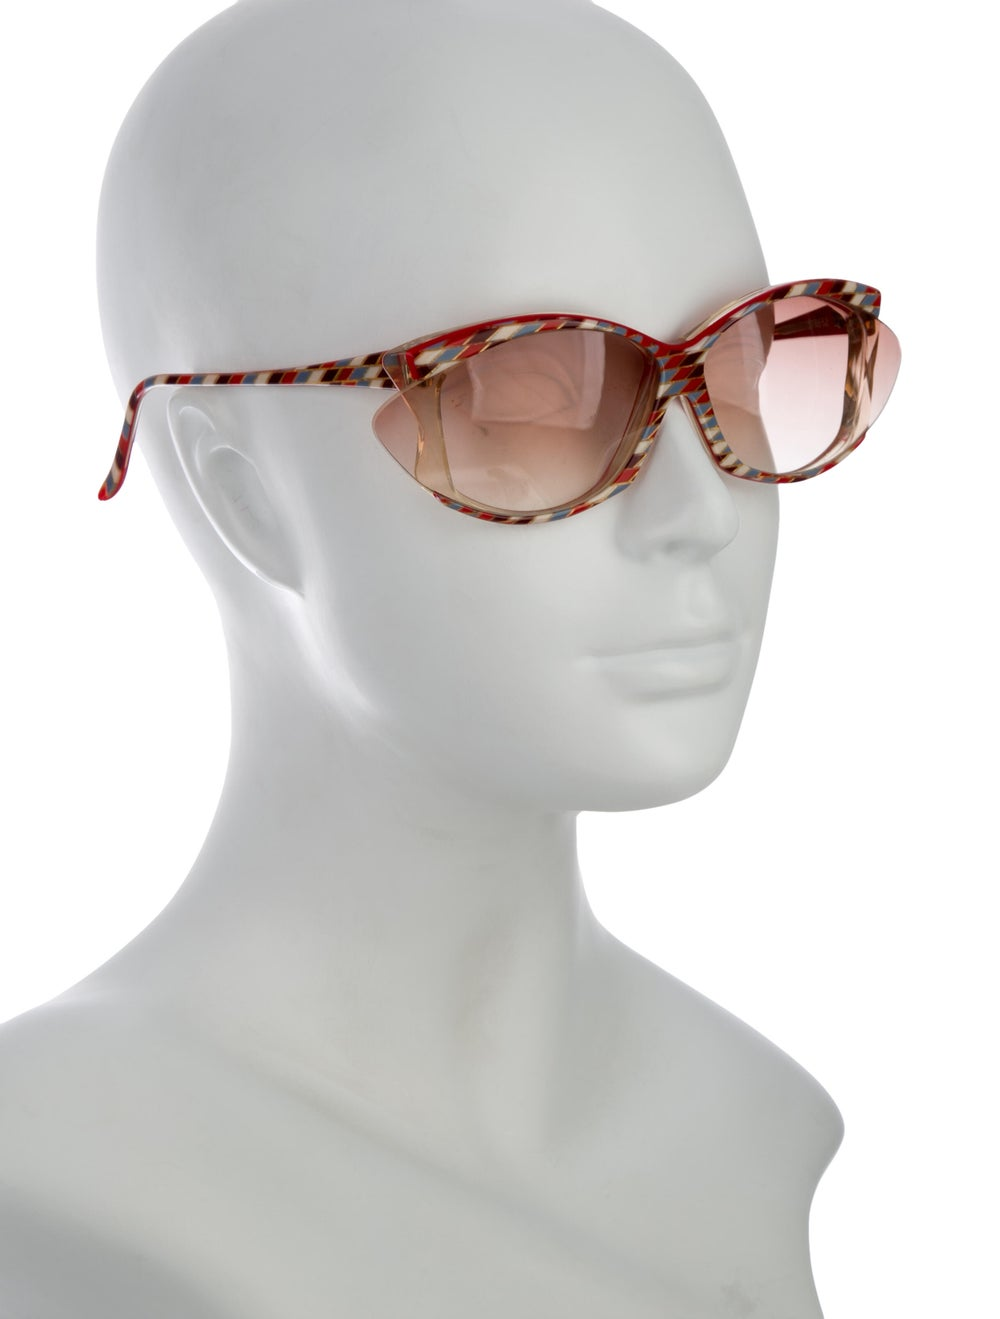 Alain Mikli Oversize Tinted Sunglasses Red - image 4